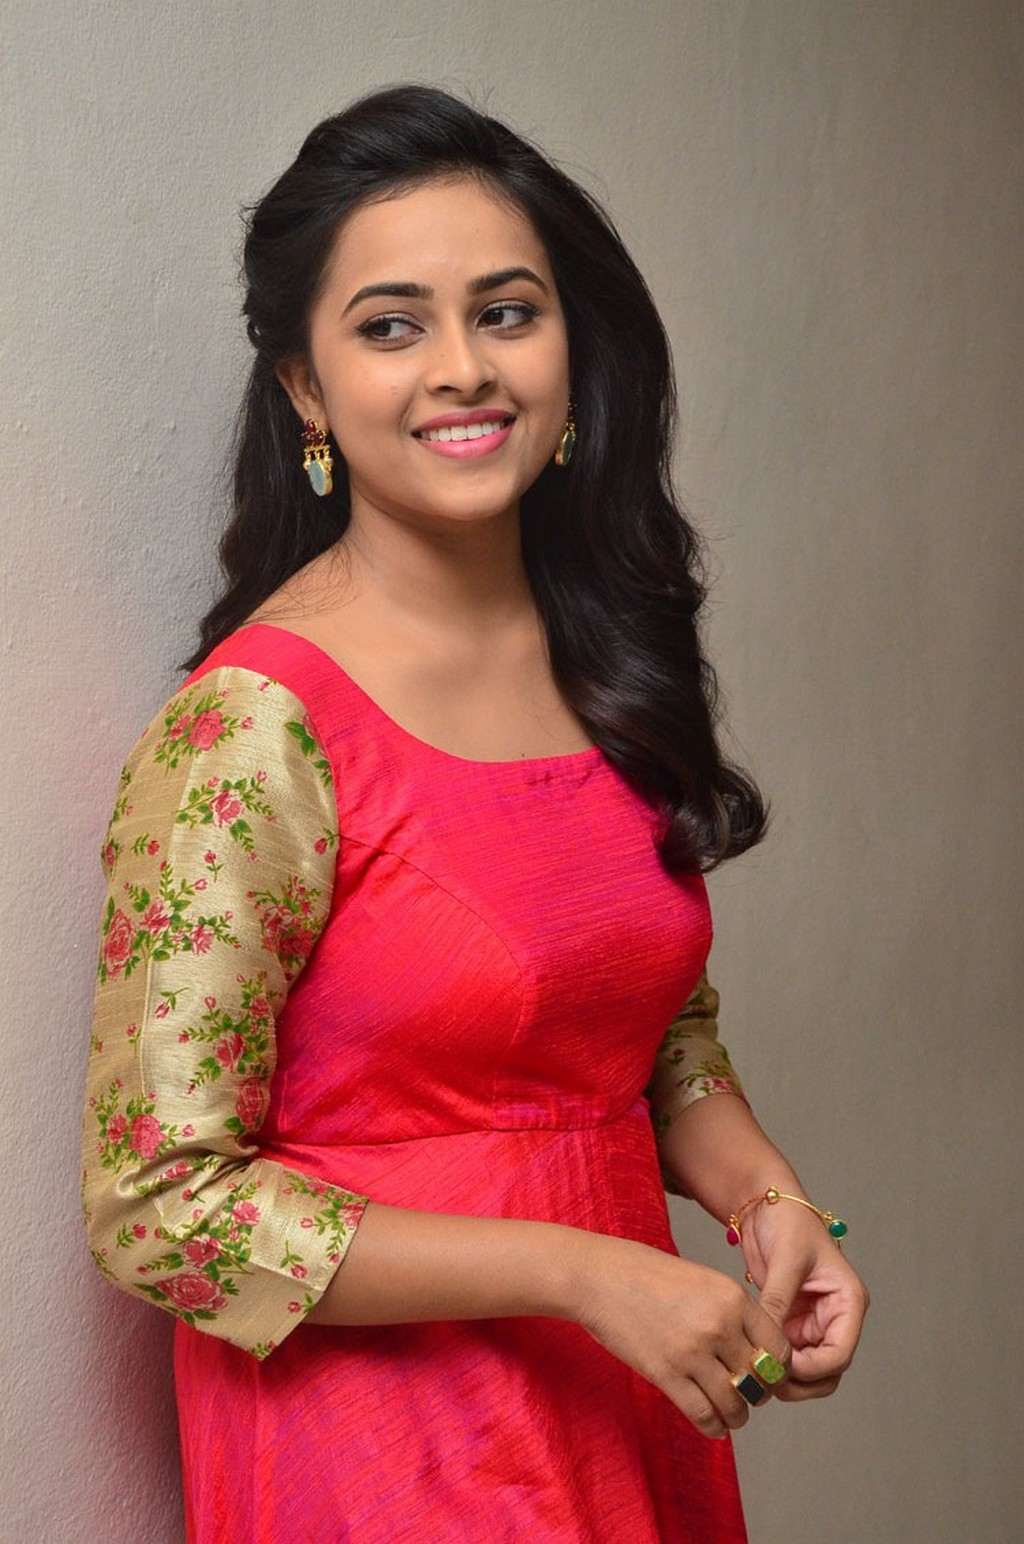 Actress Sri Divya Photos: Actress Celebrities Photos: Tamil Actress Sri Divya Latest